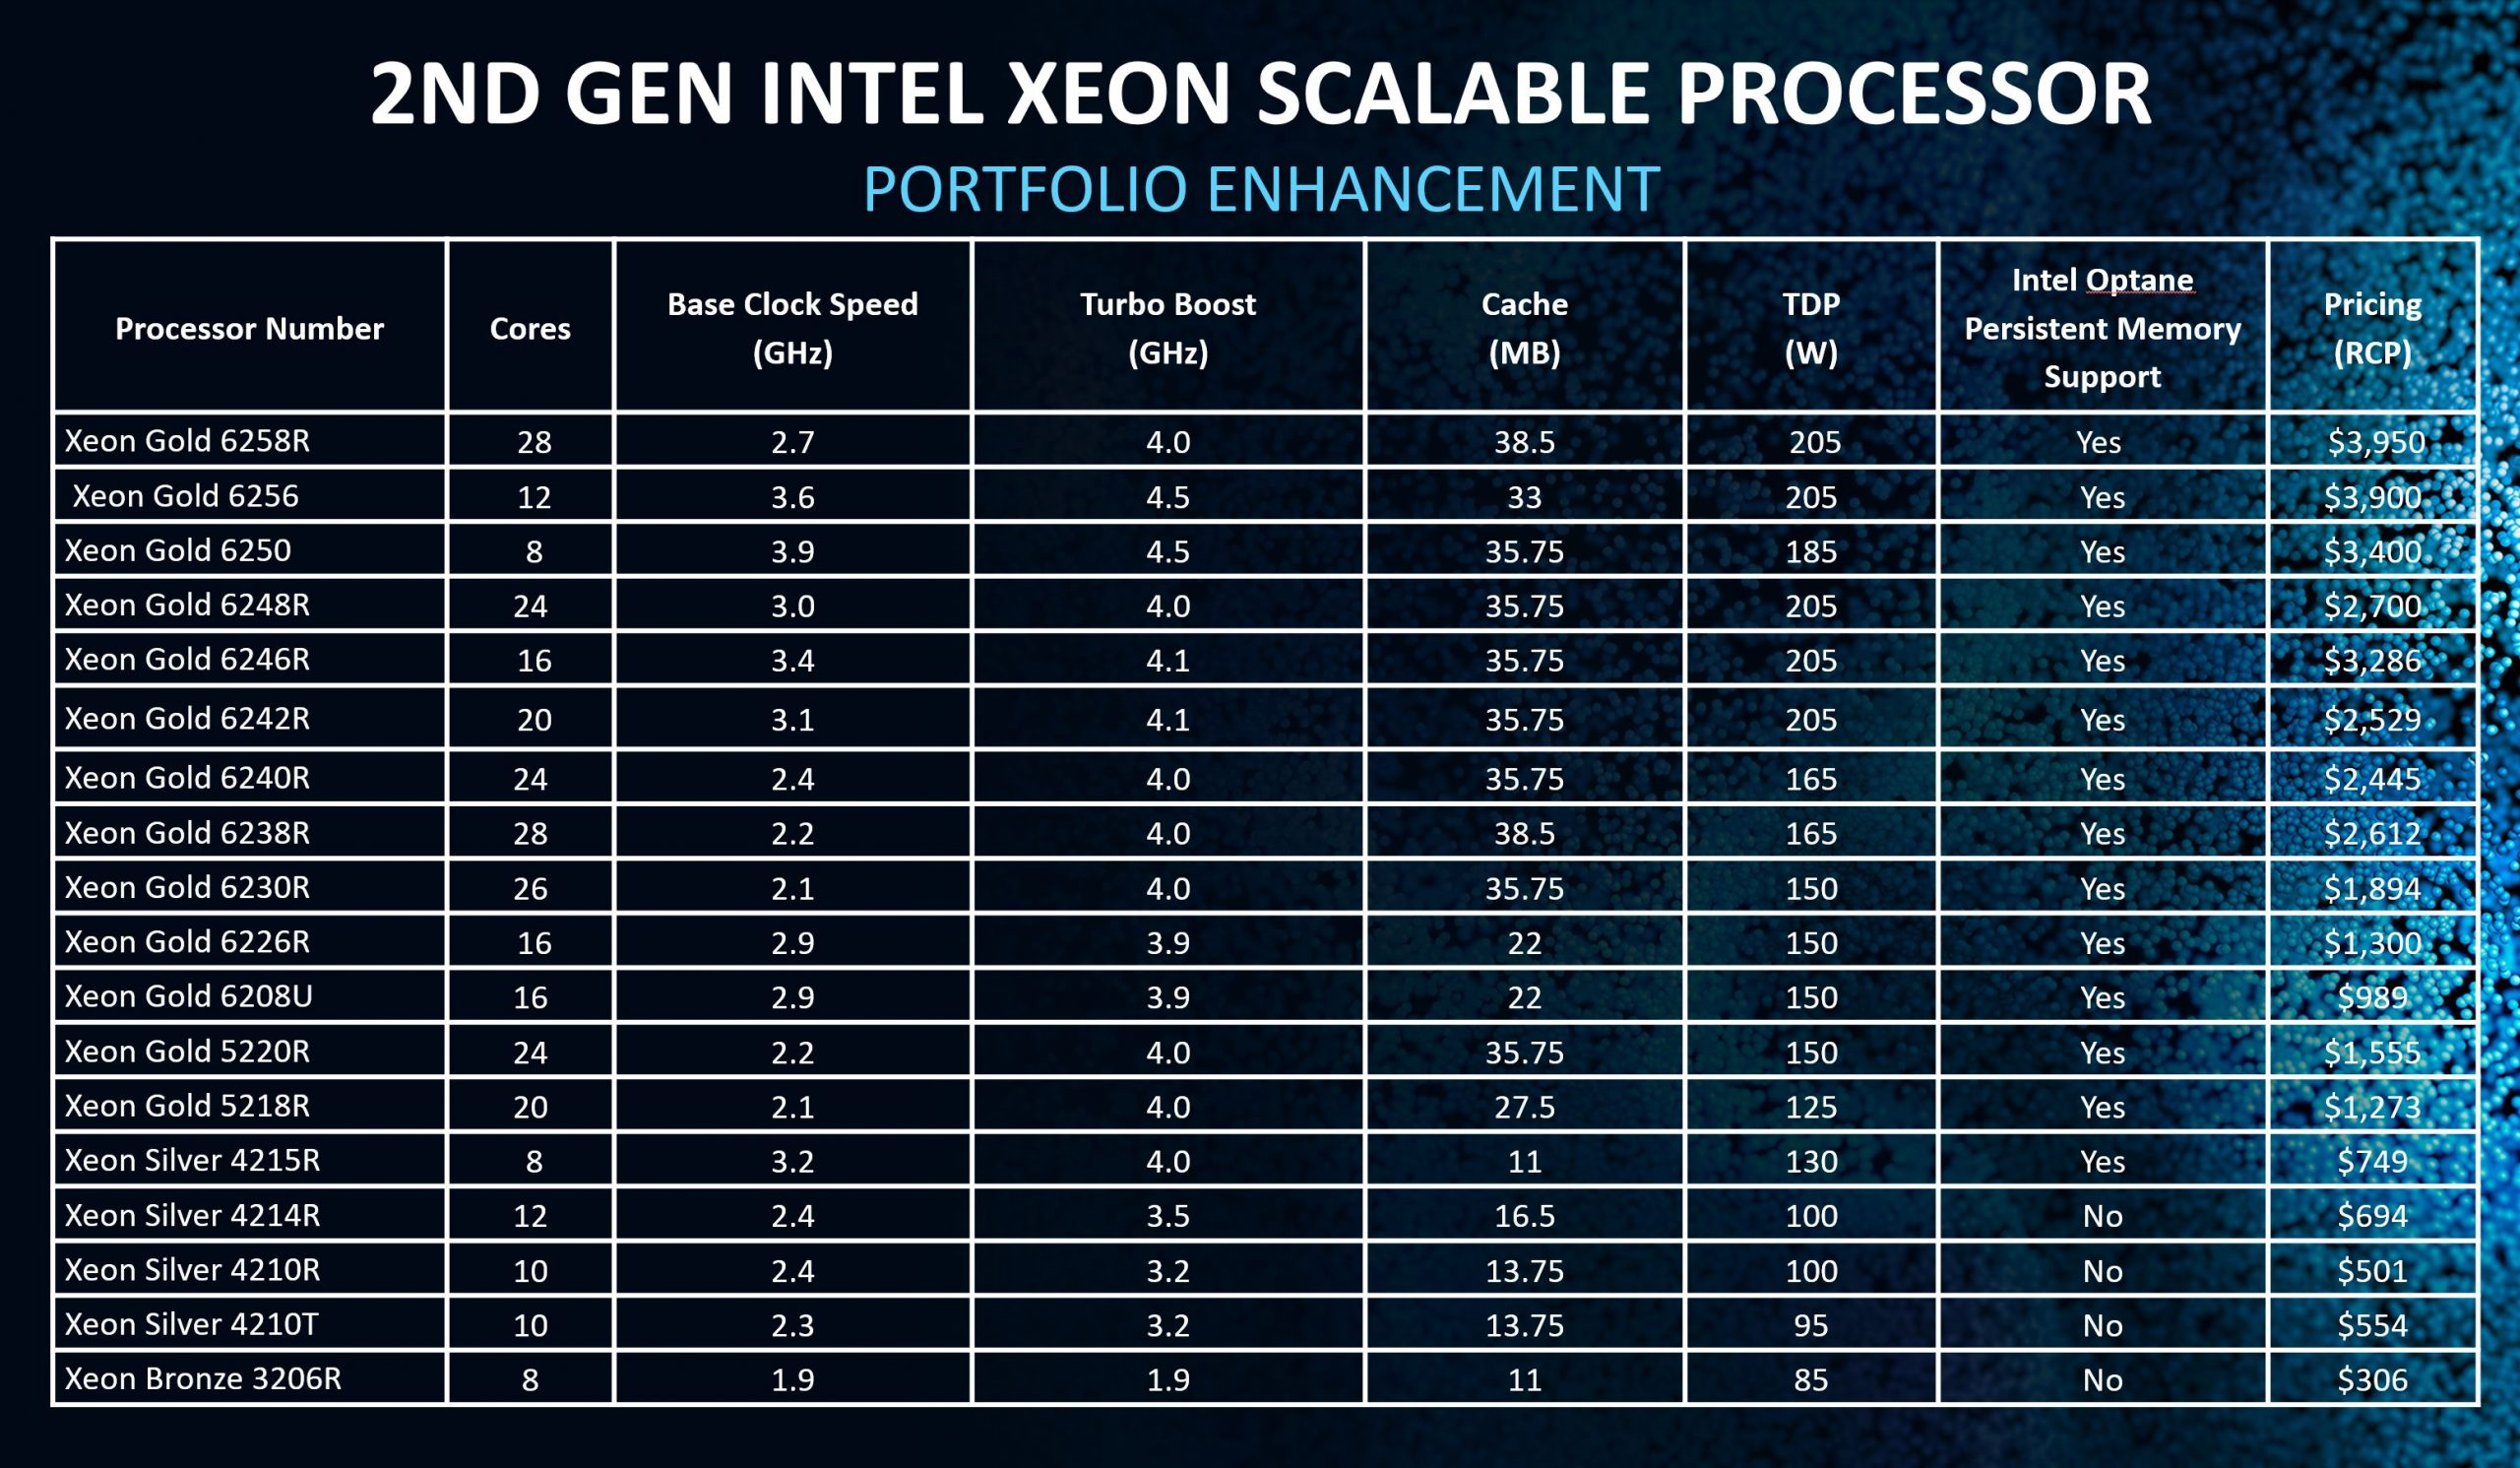 2nd Generation Intel Xeon Scalable Processor Refresh Official Table Update